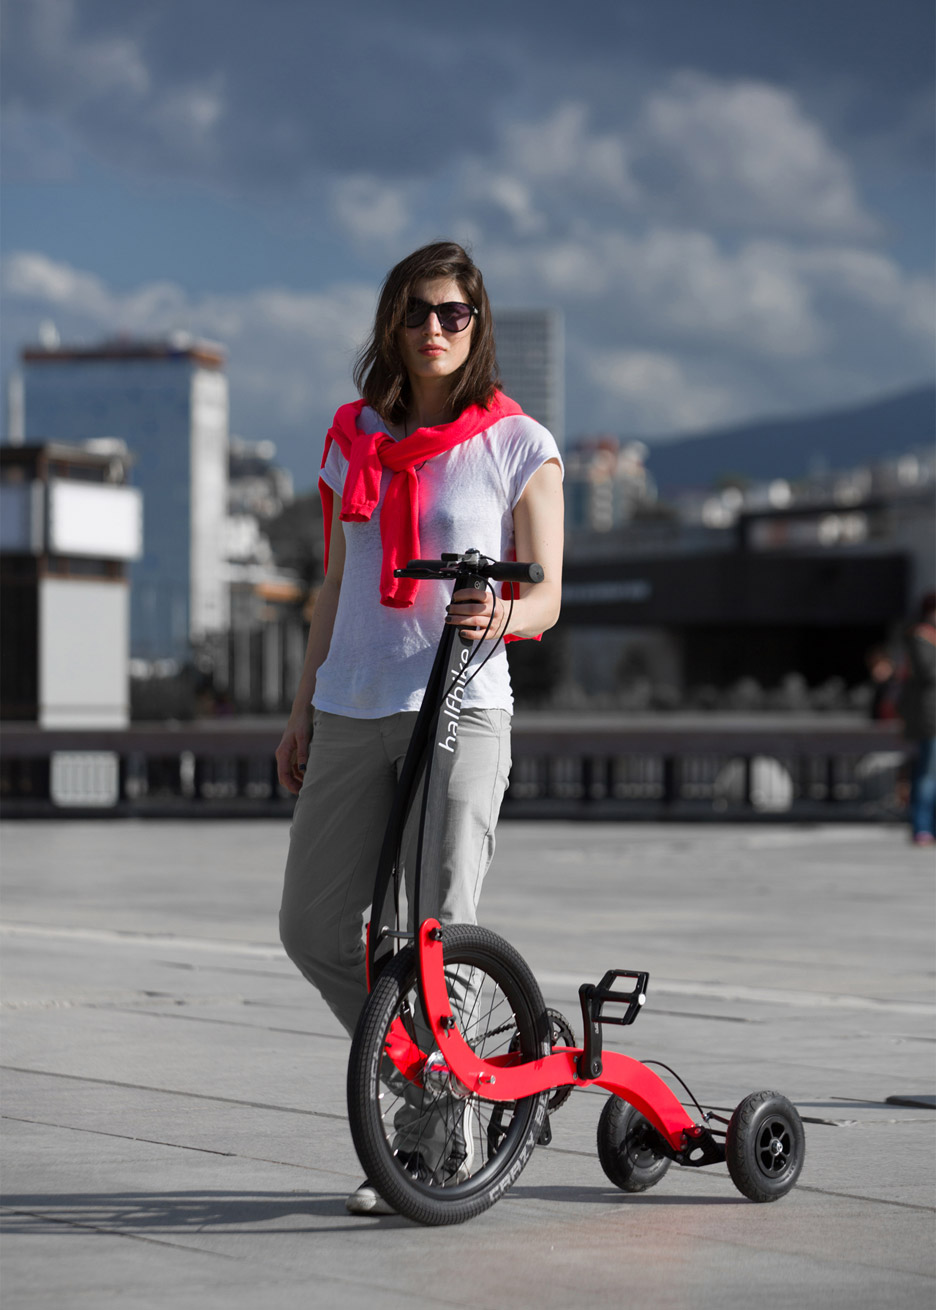 Halfbike 2.1 by Kolelinia, a cycling product design kickstarter that took off